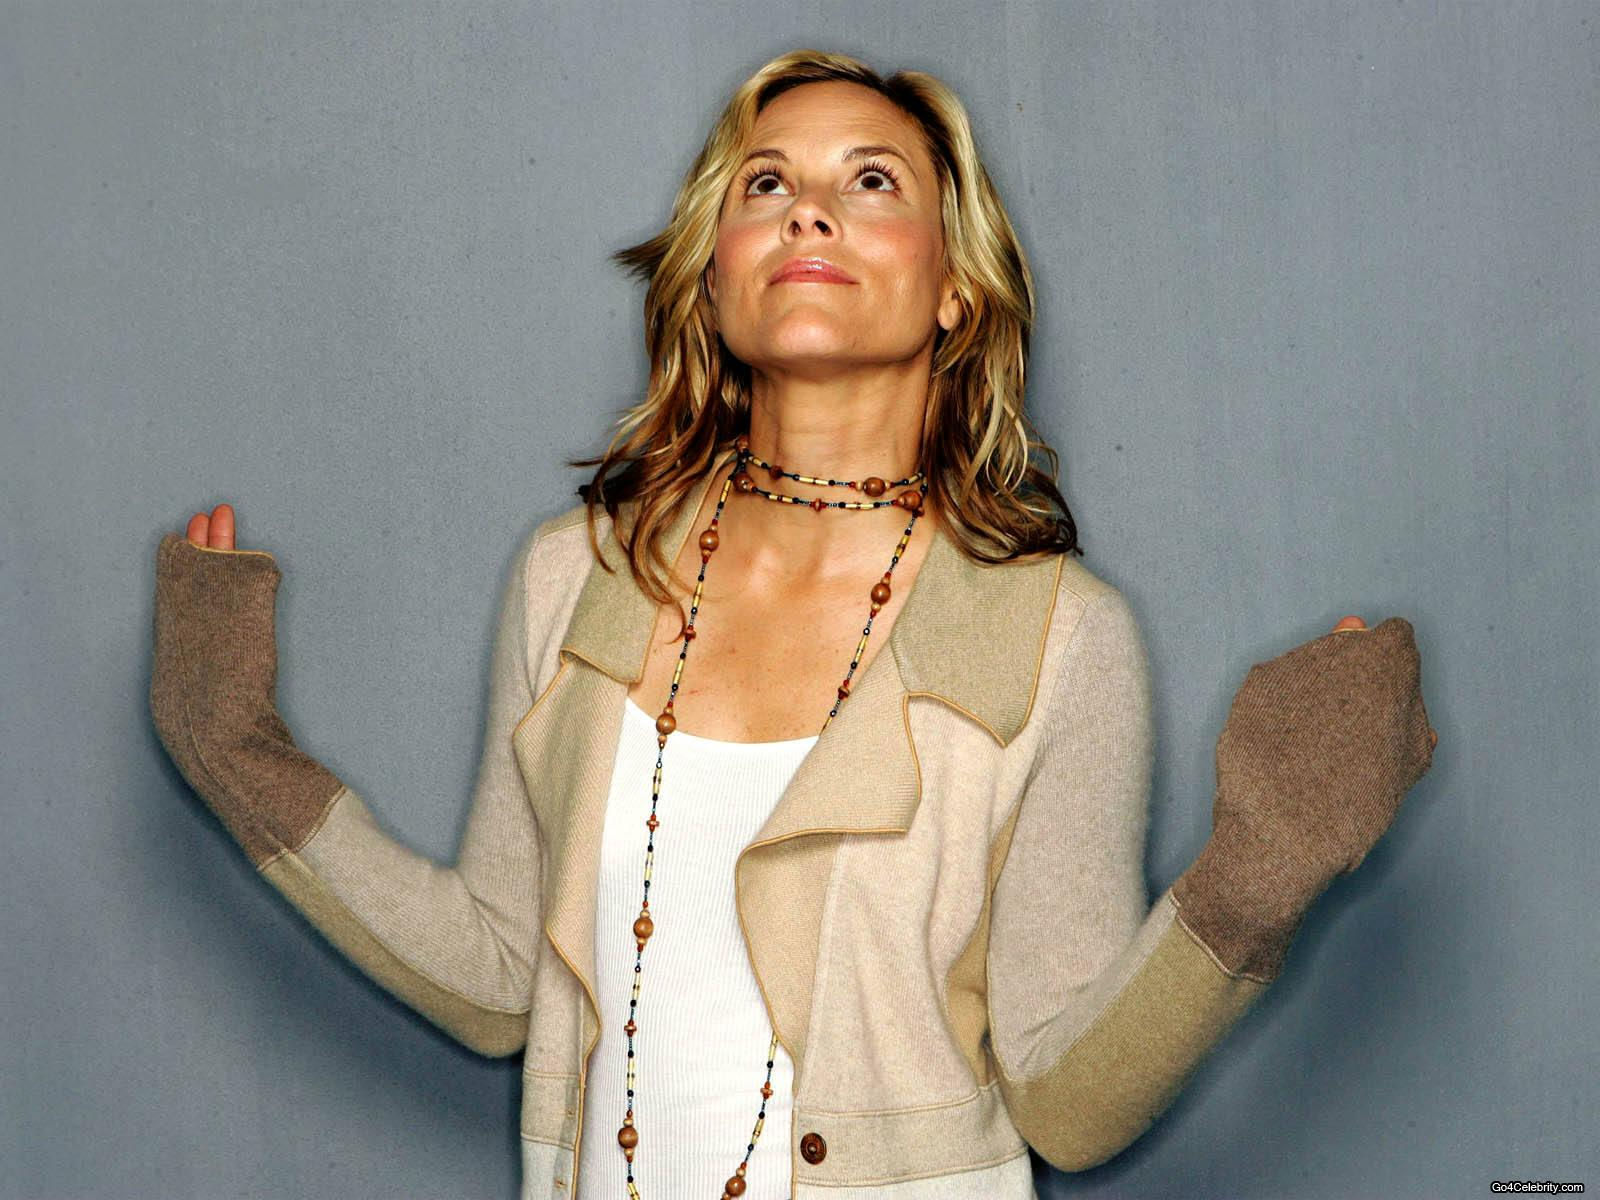 Maria Bello Awesome And Fabulous Images Hd Wallpapers Photos And